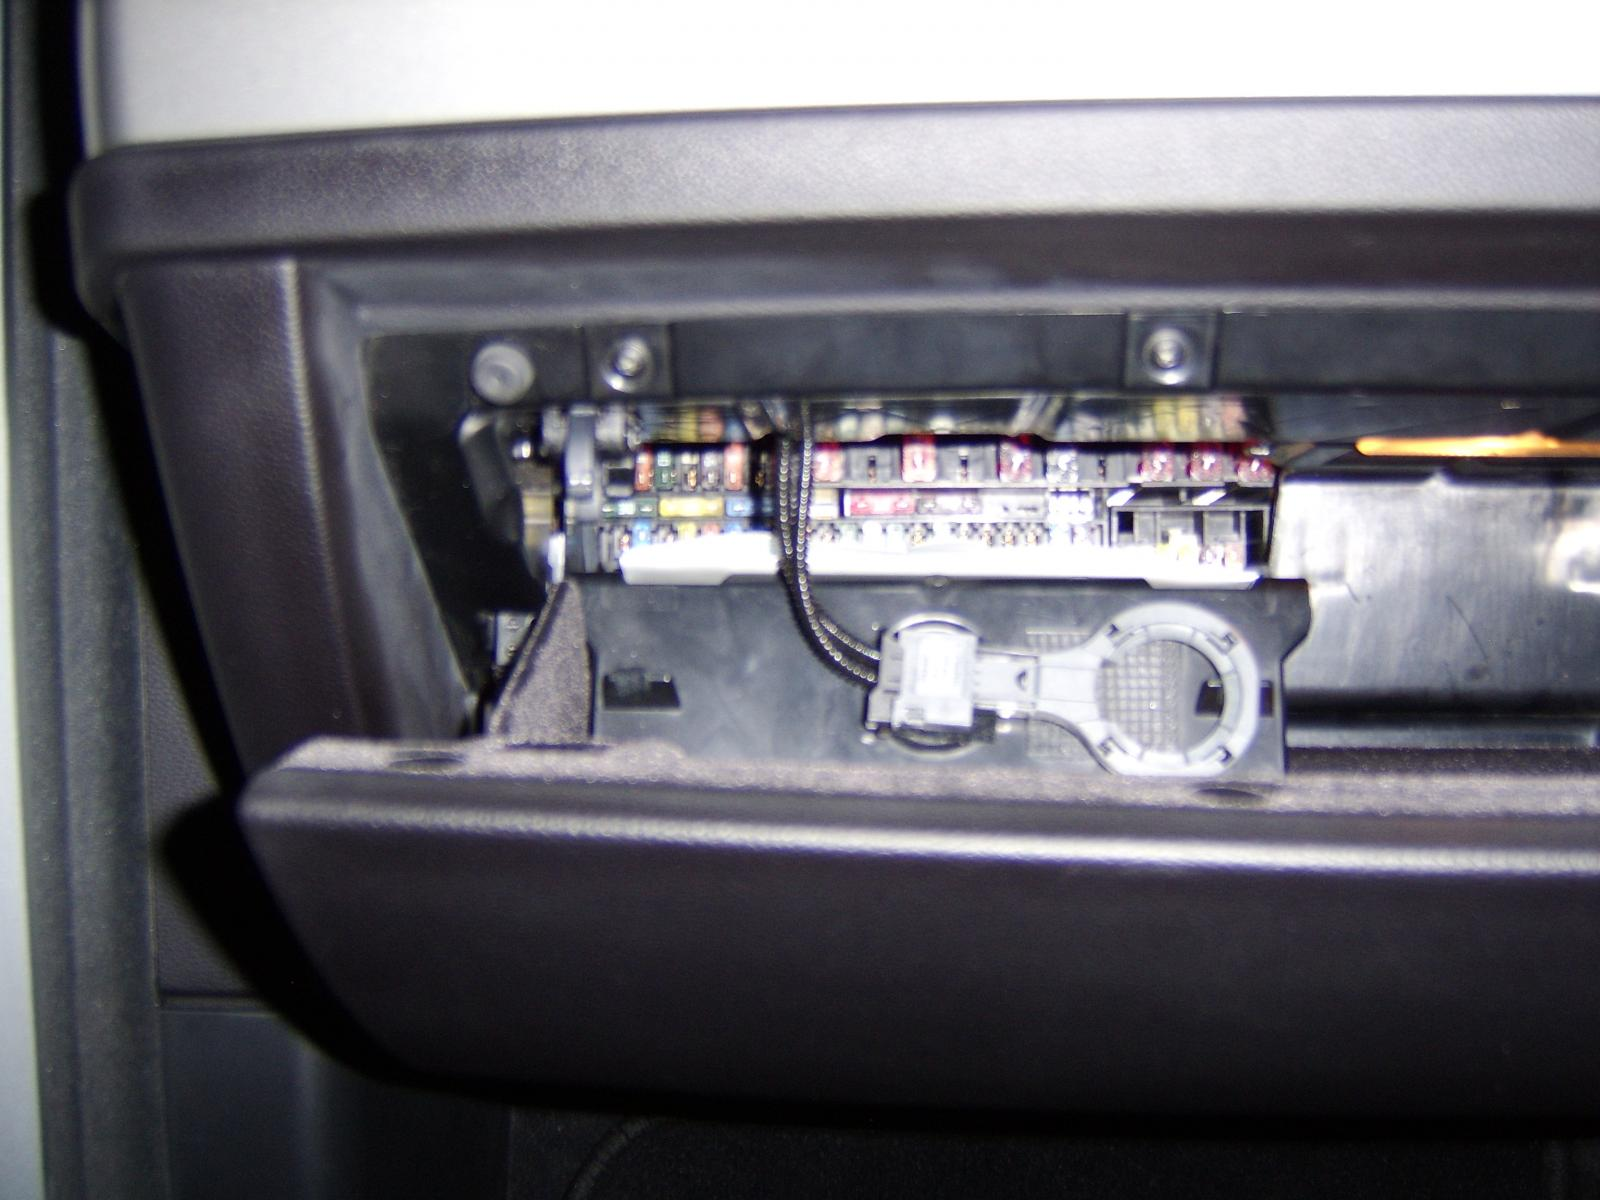 fuse box location 2008 bmw m5 location of fuse box for cigarett lighter - bimmerfest ...